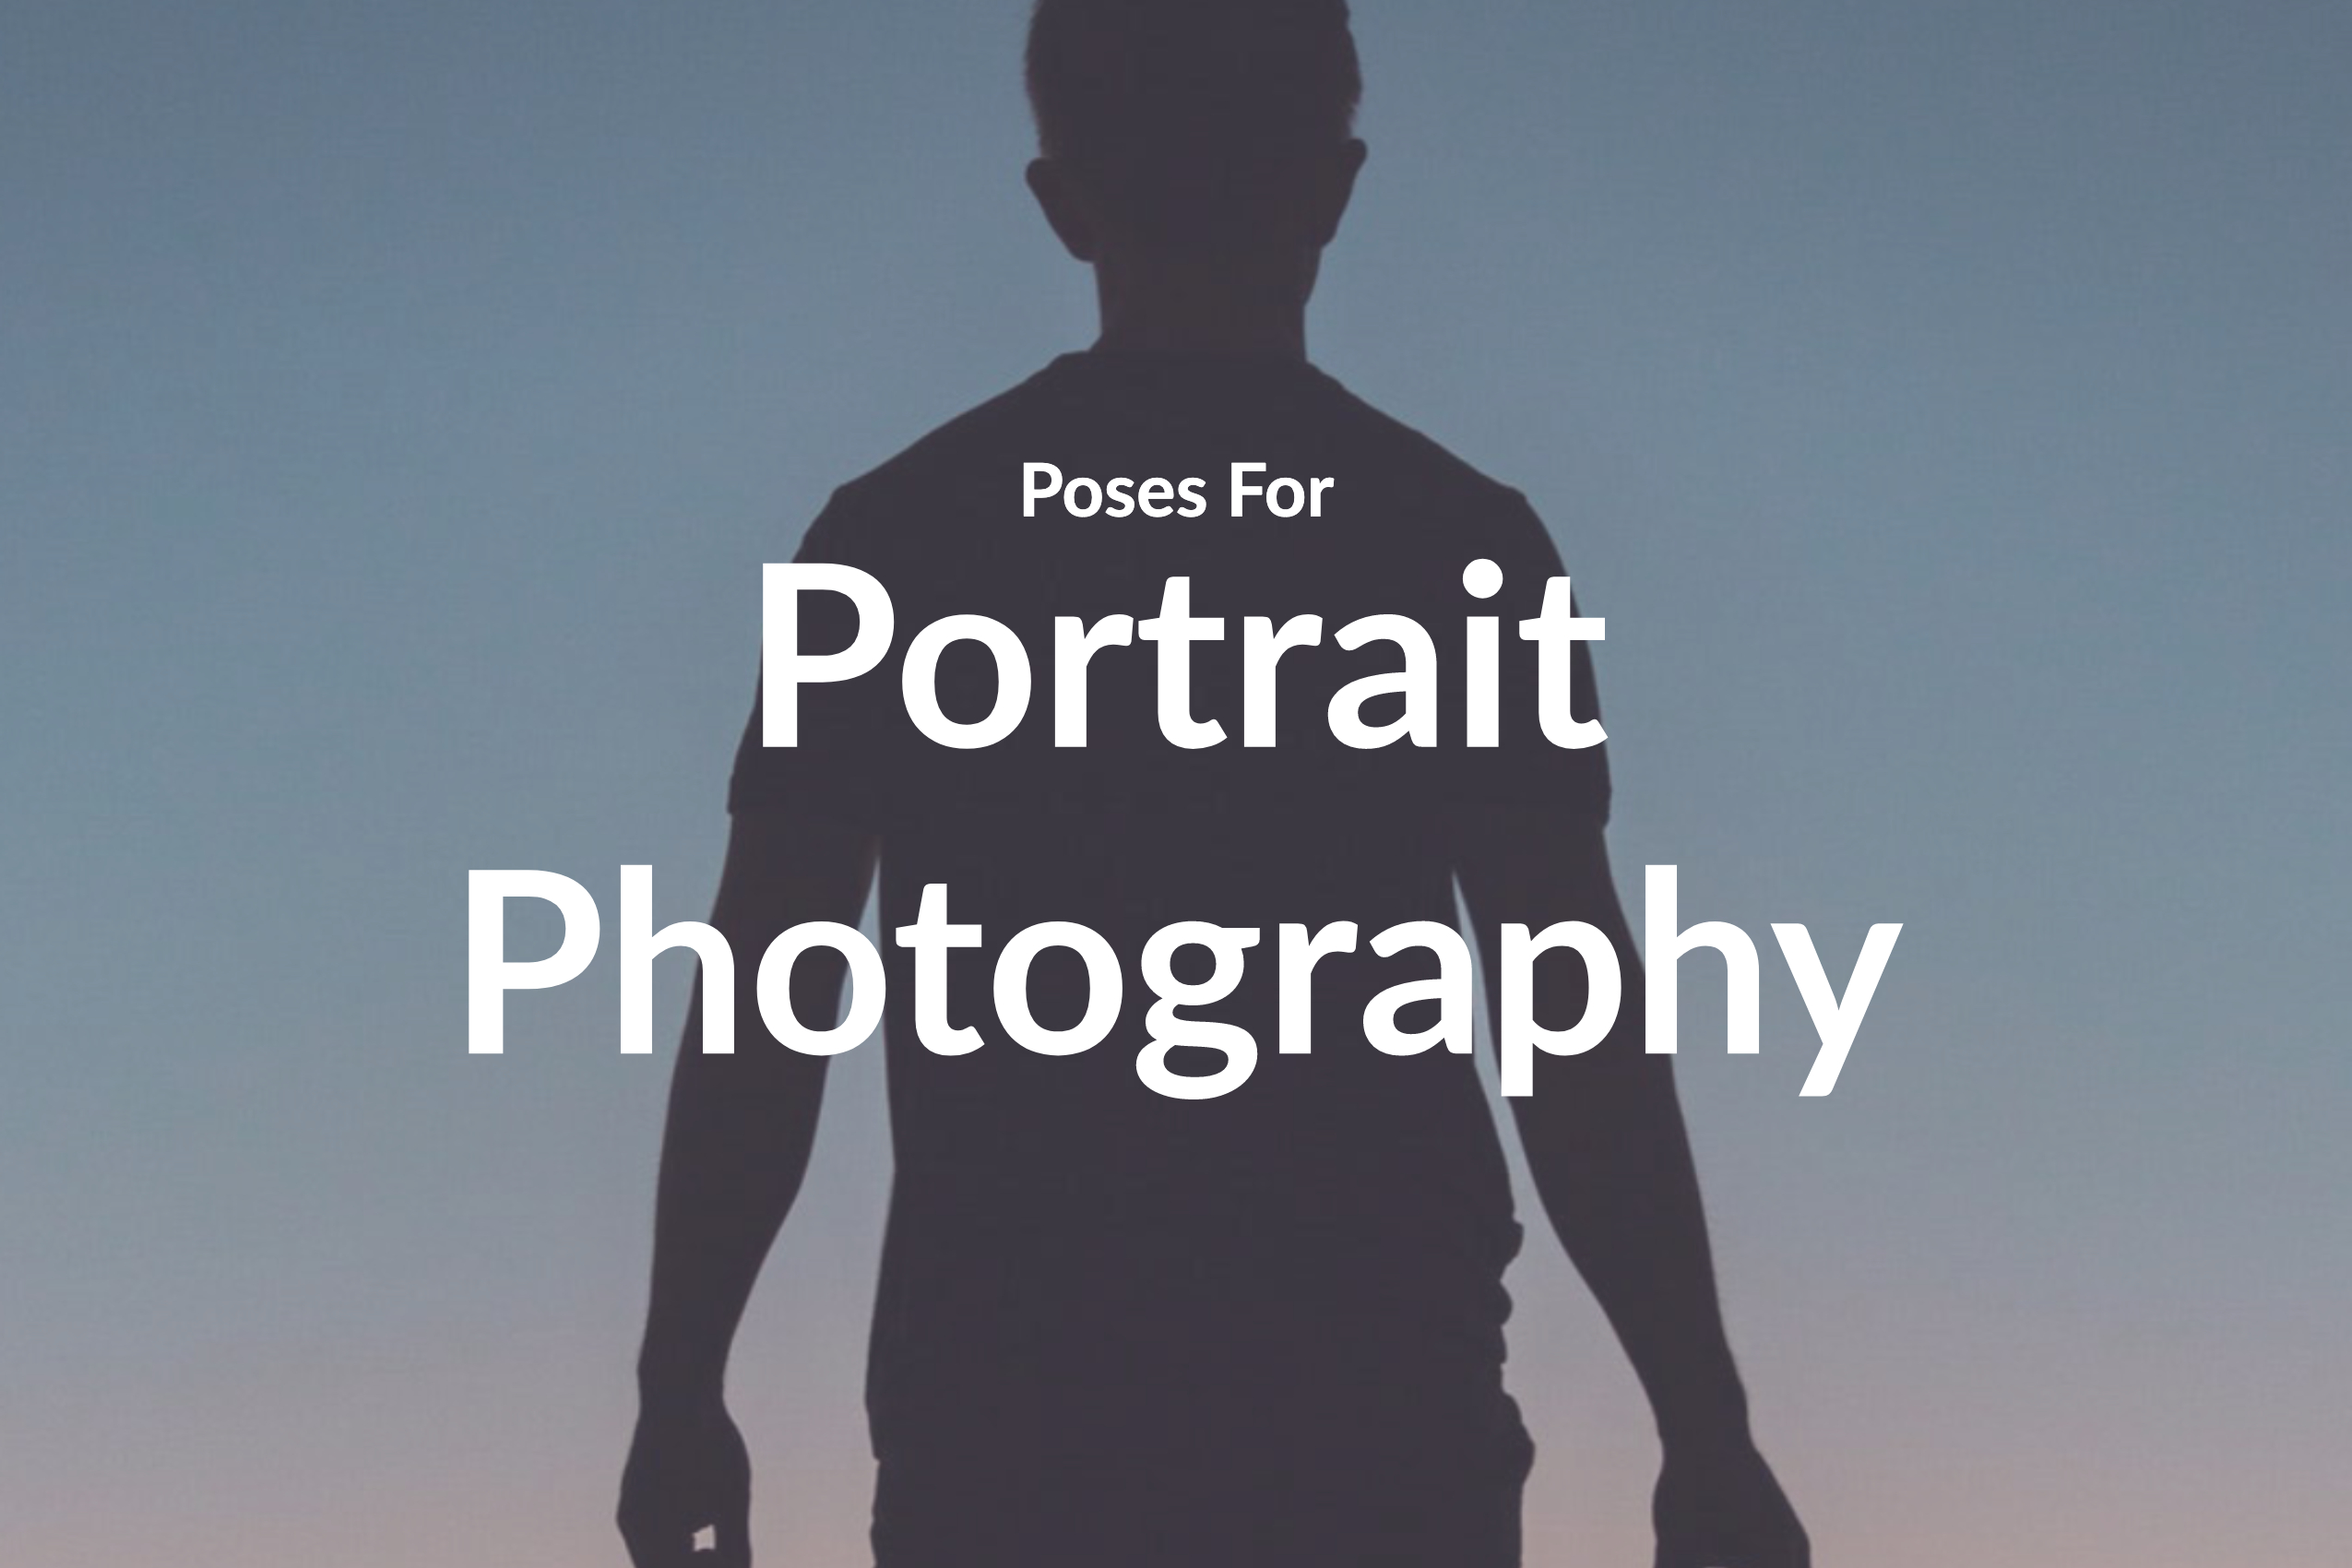 Portrait Photography Poses: 7 Foolproof Portrait Poses and Angles